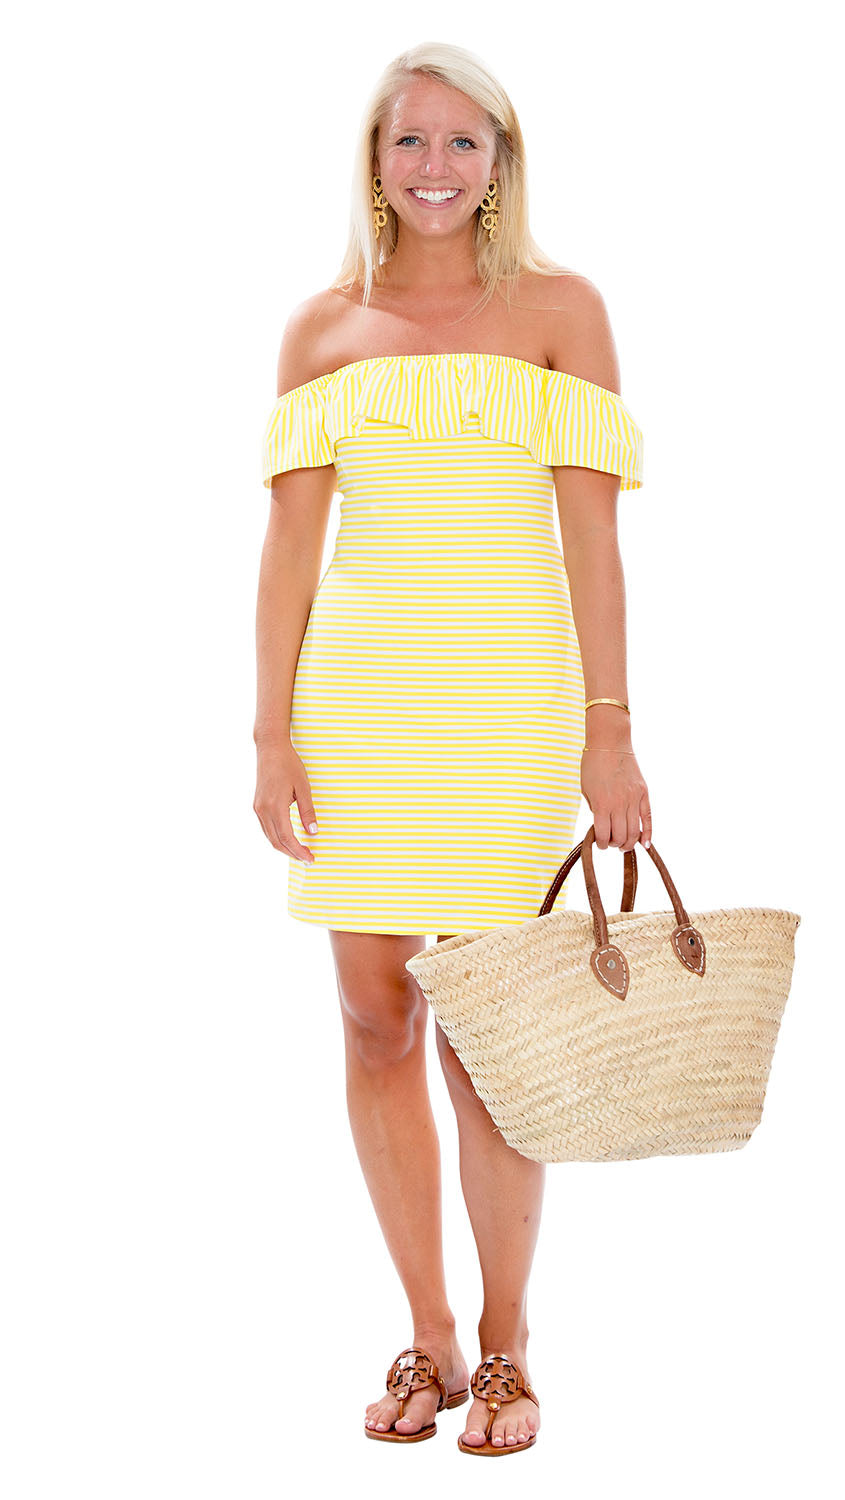 Shoreline Dress - White/Yellow Stripe